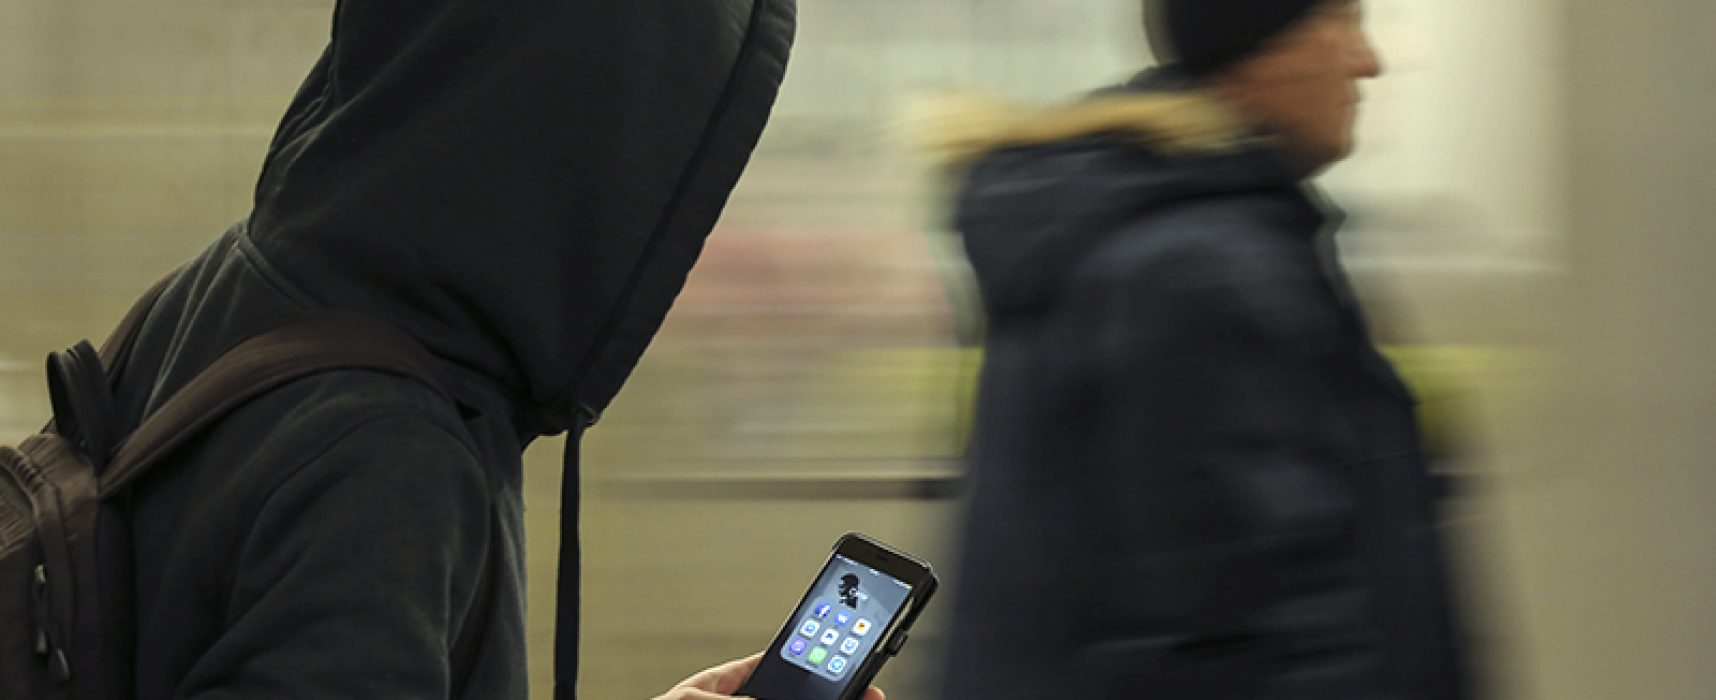 Proposed Legislation Would Ban Anonymous Messenger Services in Russia